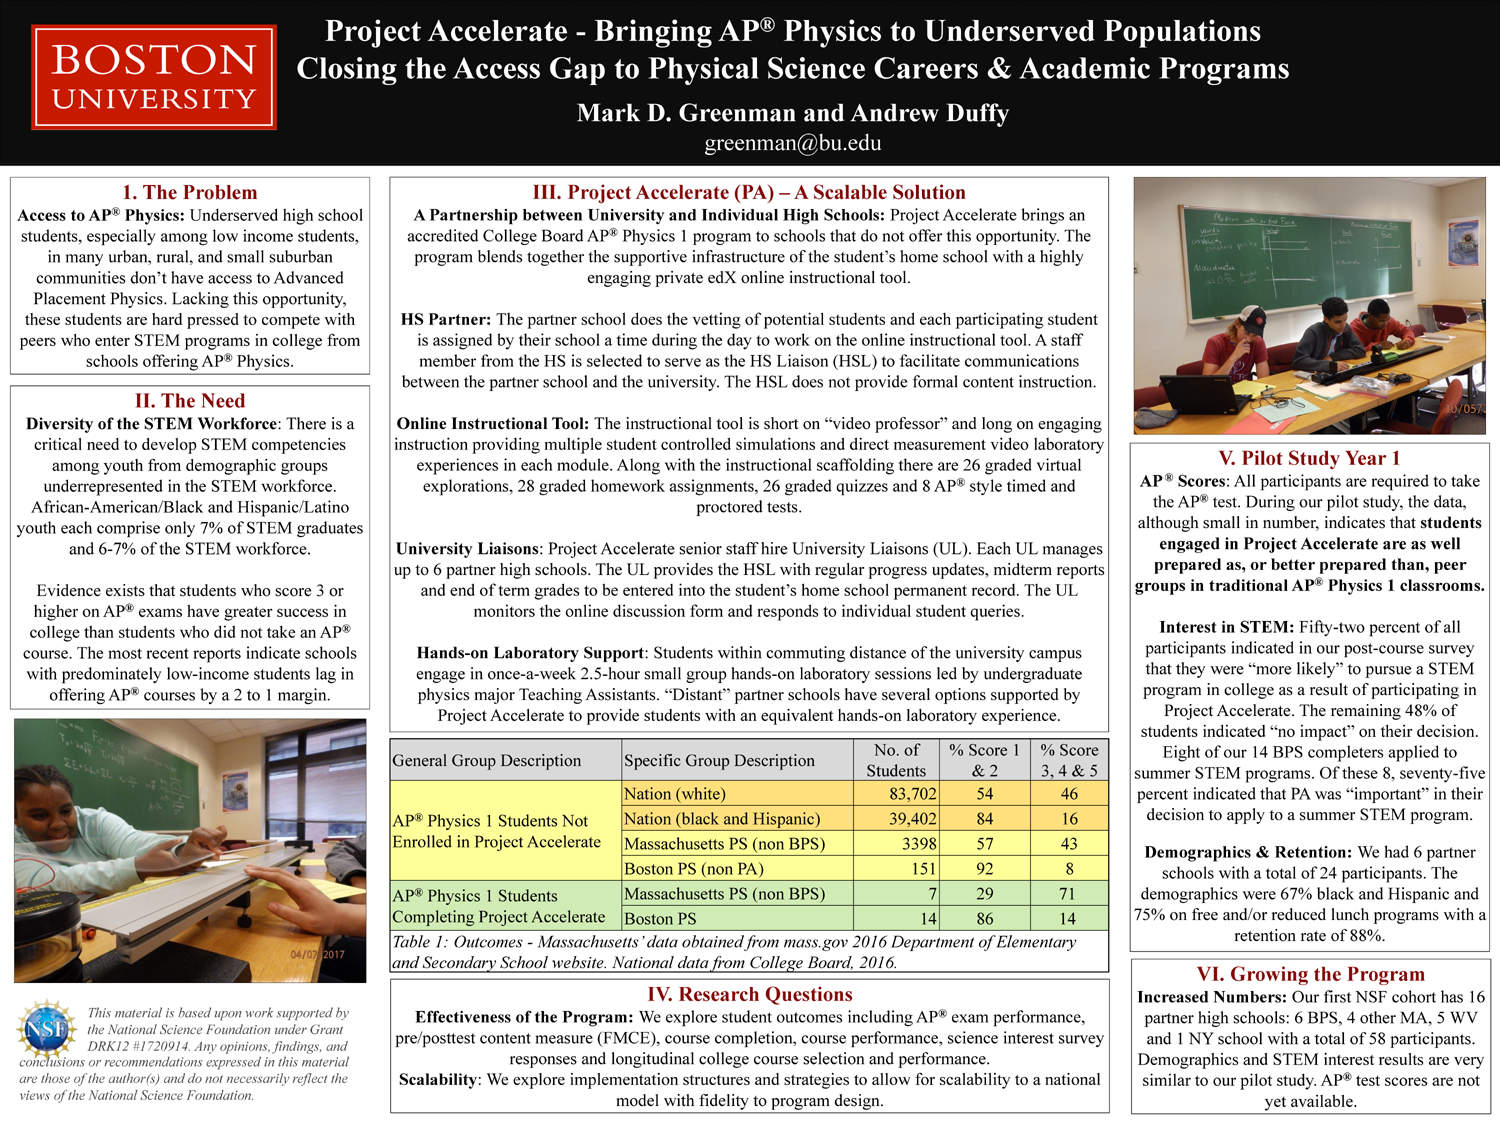 Project Accelerate: University-High School AP Physics Partnerships